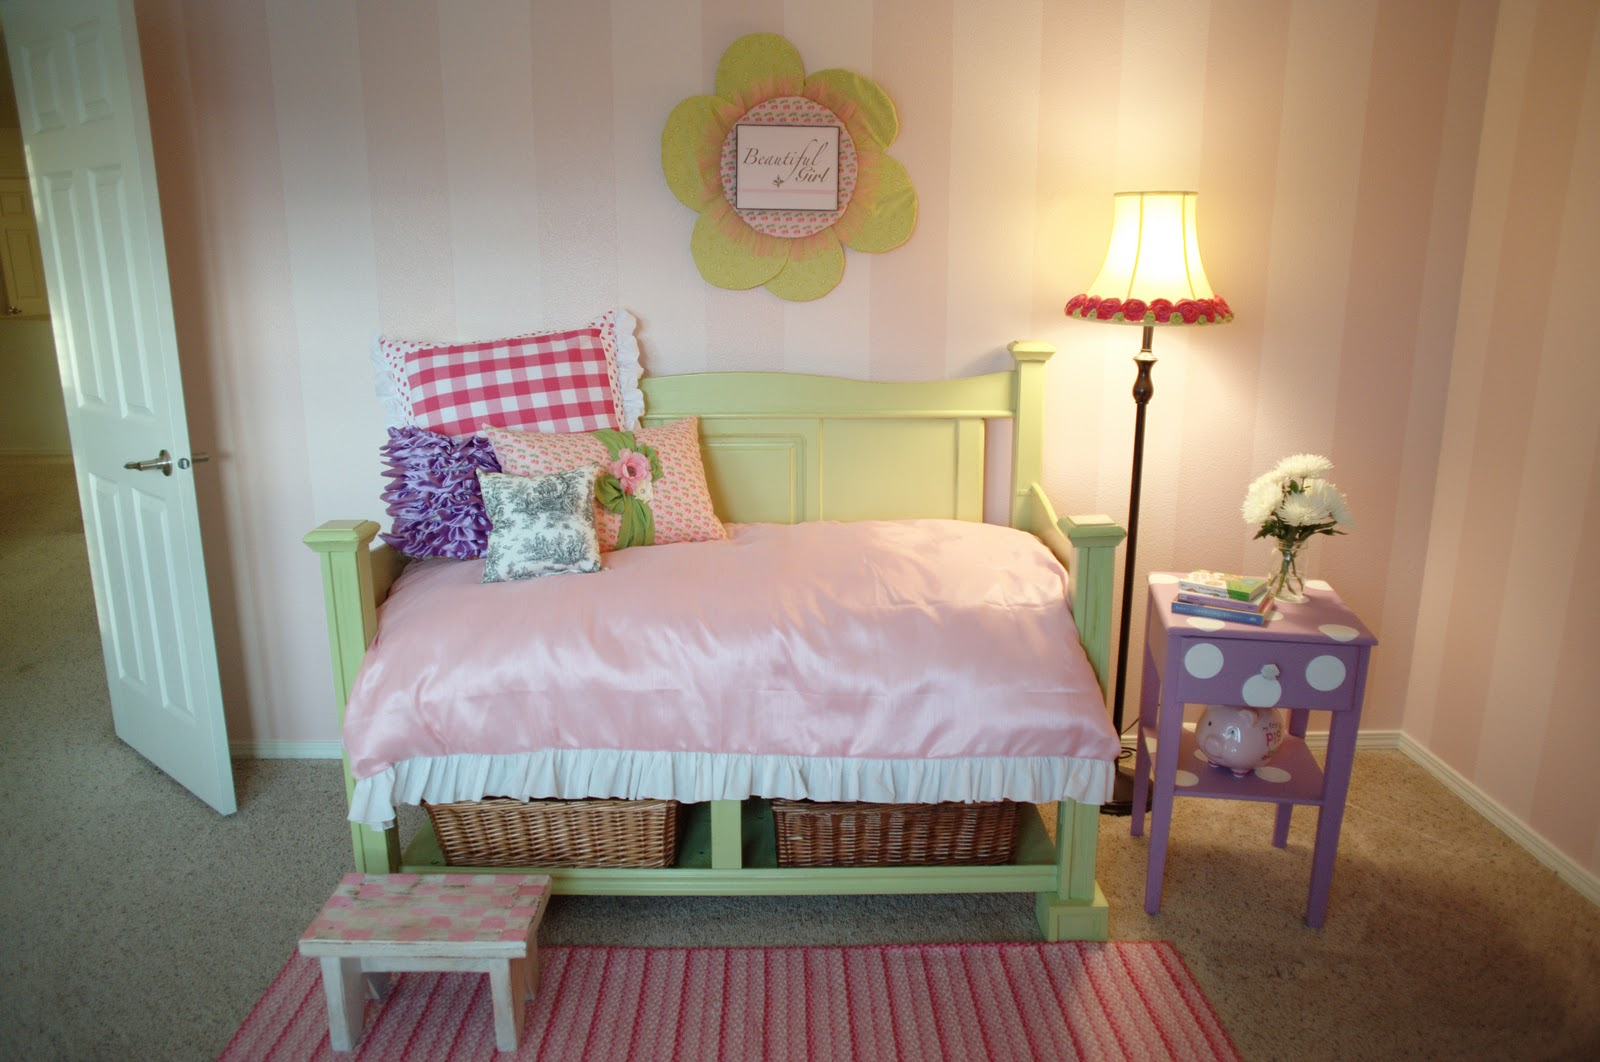 Baby bed for two year old - Baby Bed For Two Year Old 22